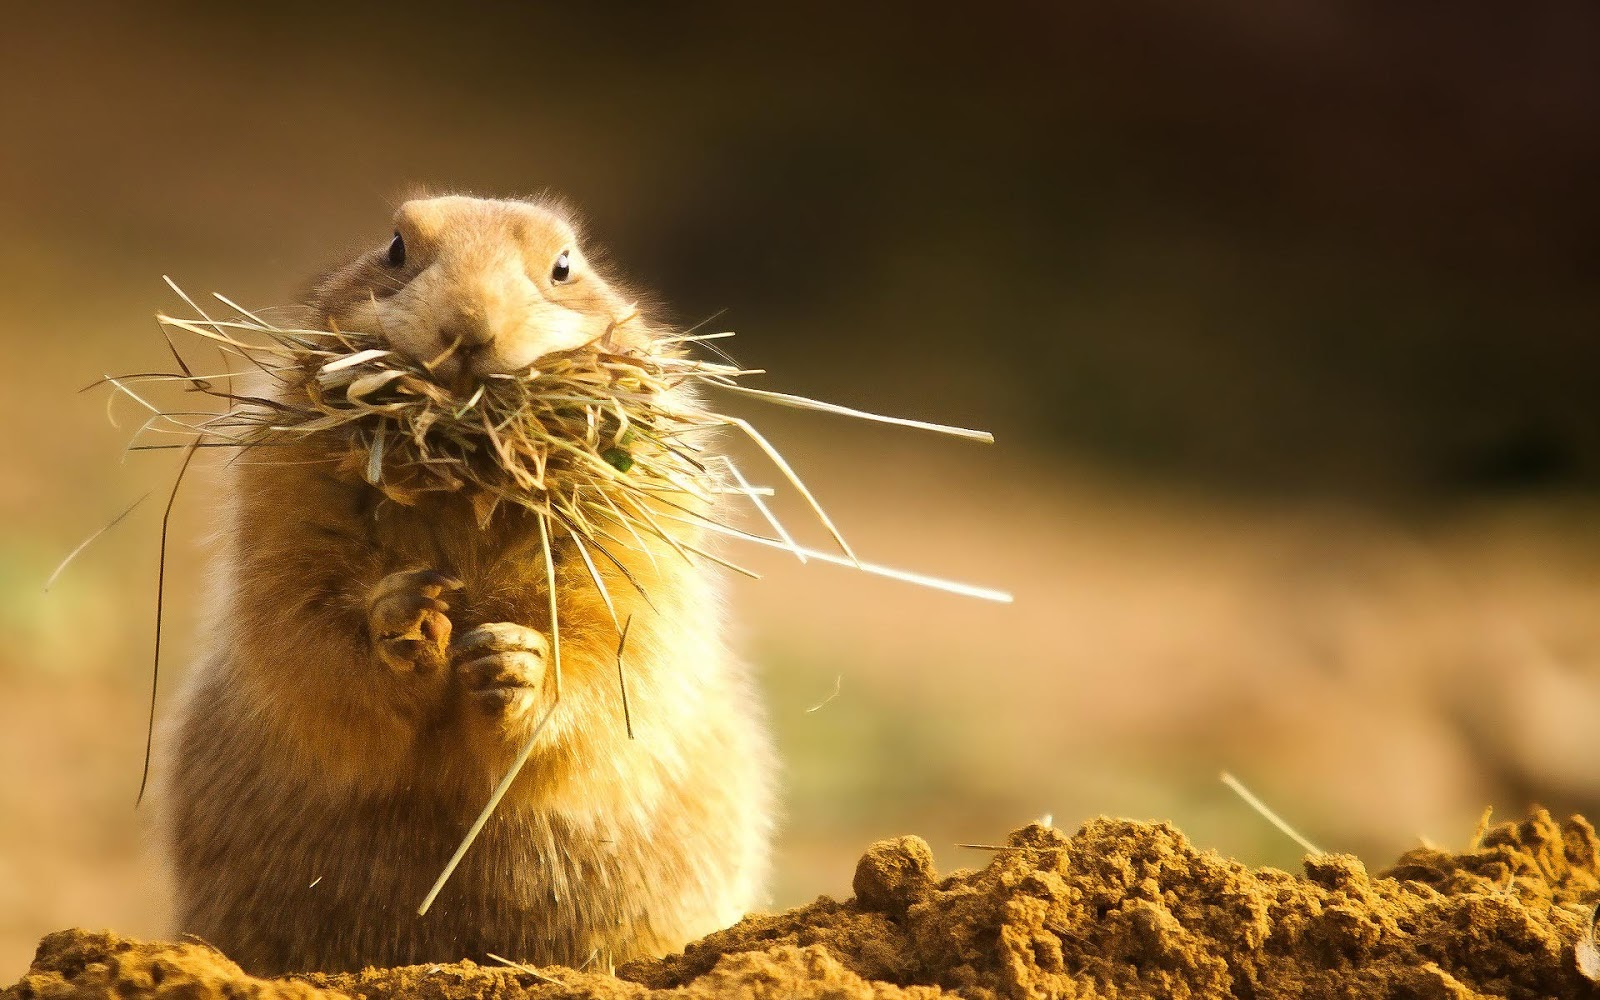 Wallpaper of a hamster with hay and grass in its mouth HD hamsters 1600x1000